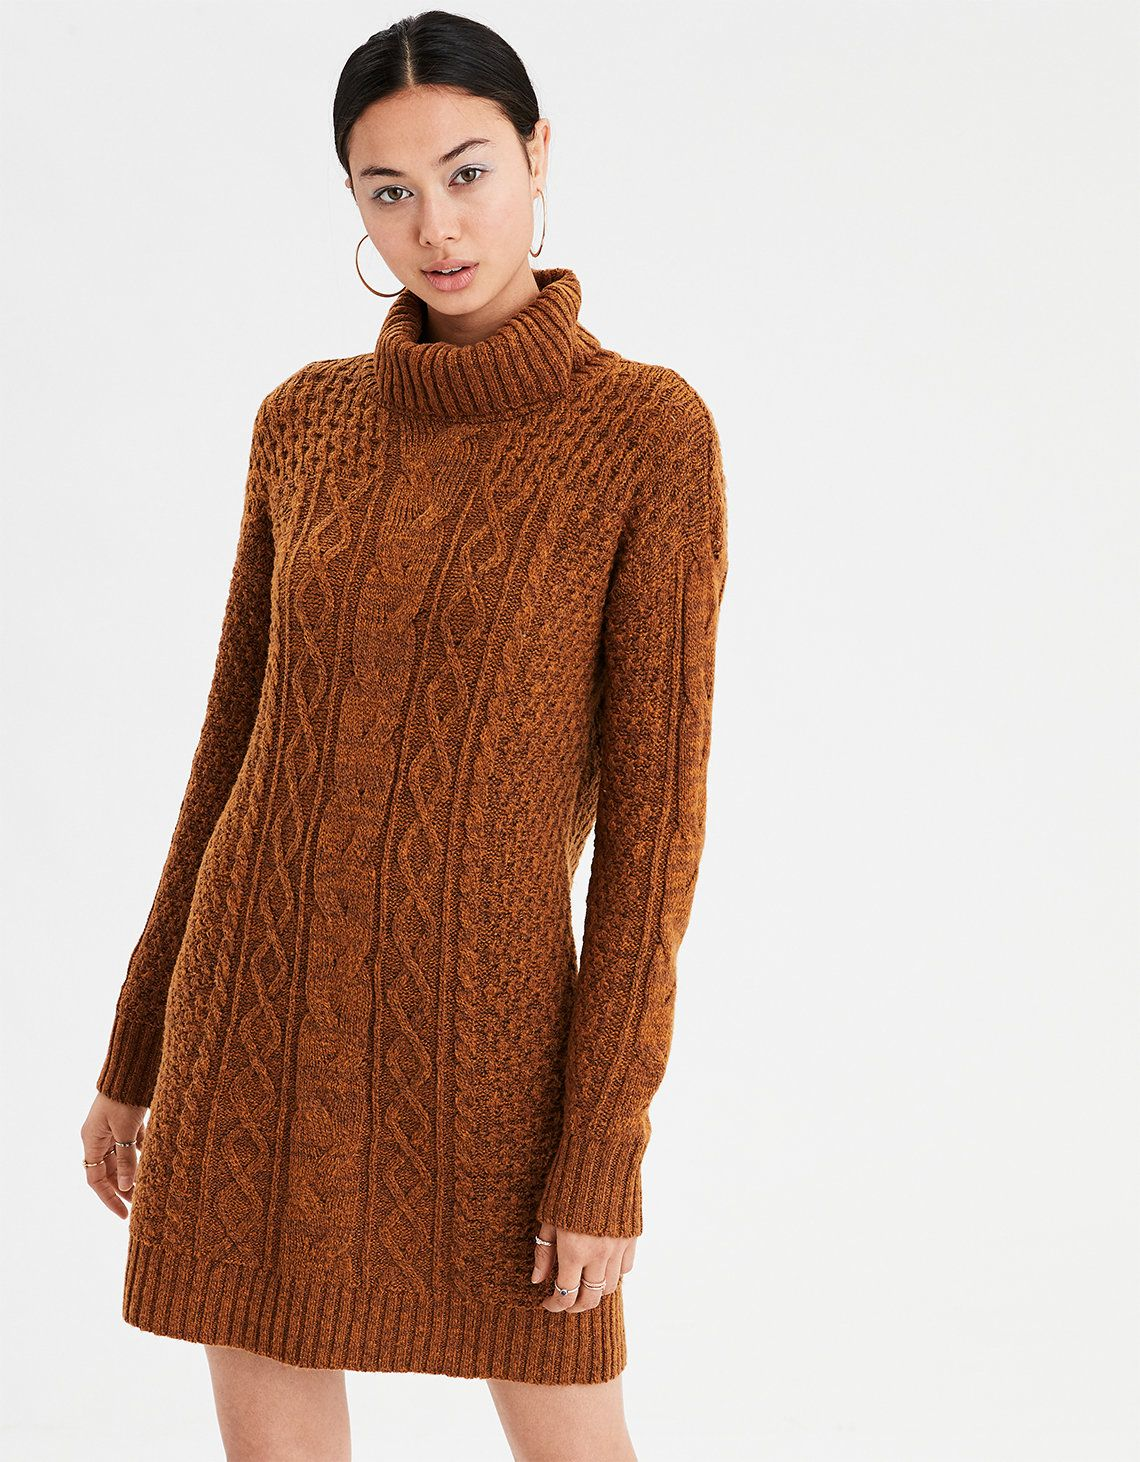 45+ Cable knit sweater dress information